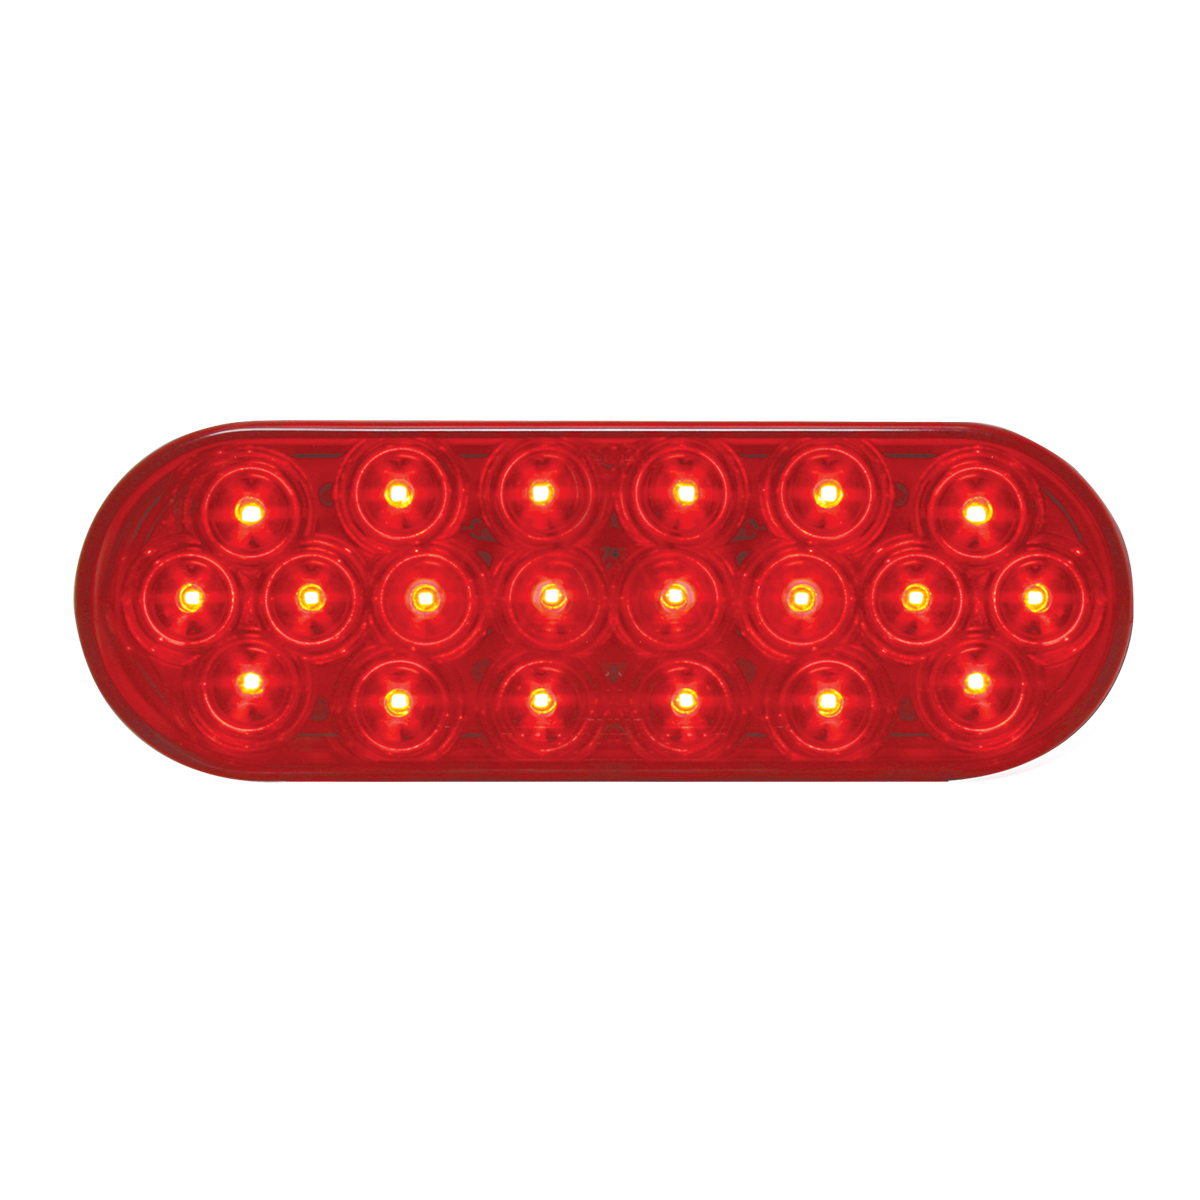 #87721 - Oval Sealed Fleet LED Flat Red/Red Light - Slanted